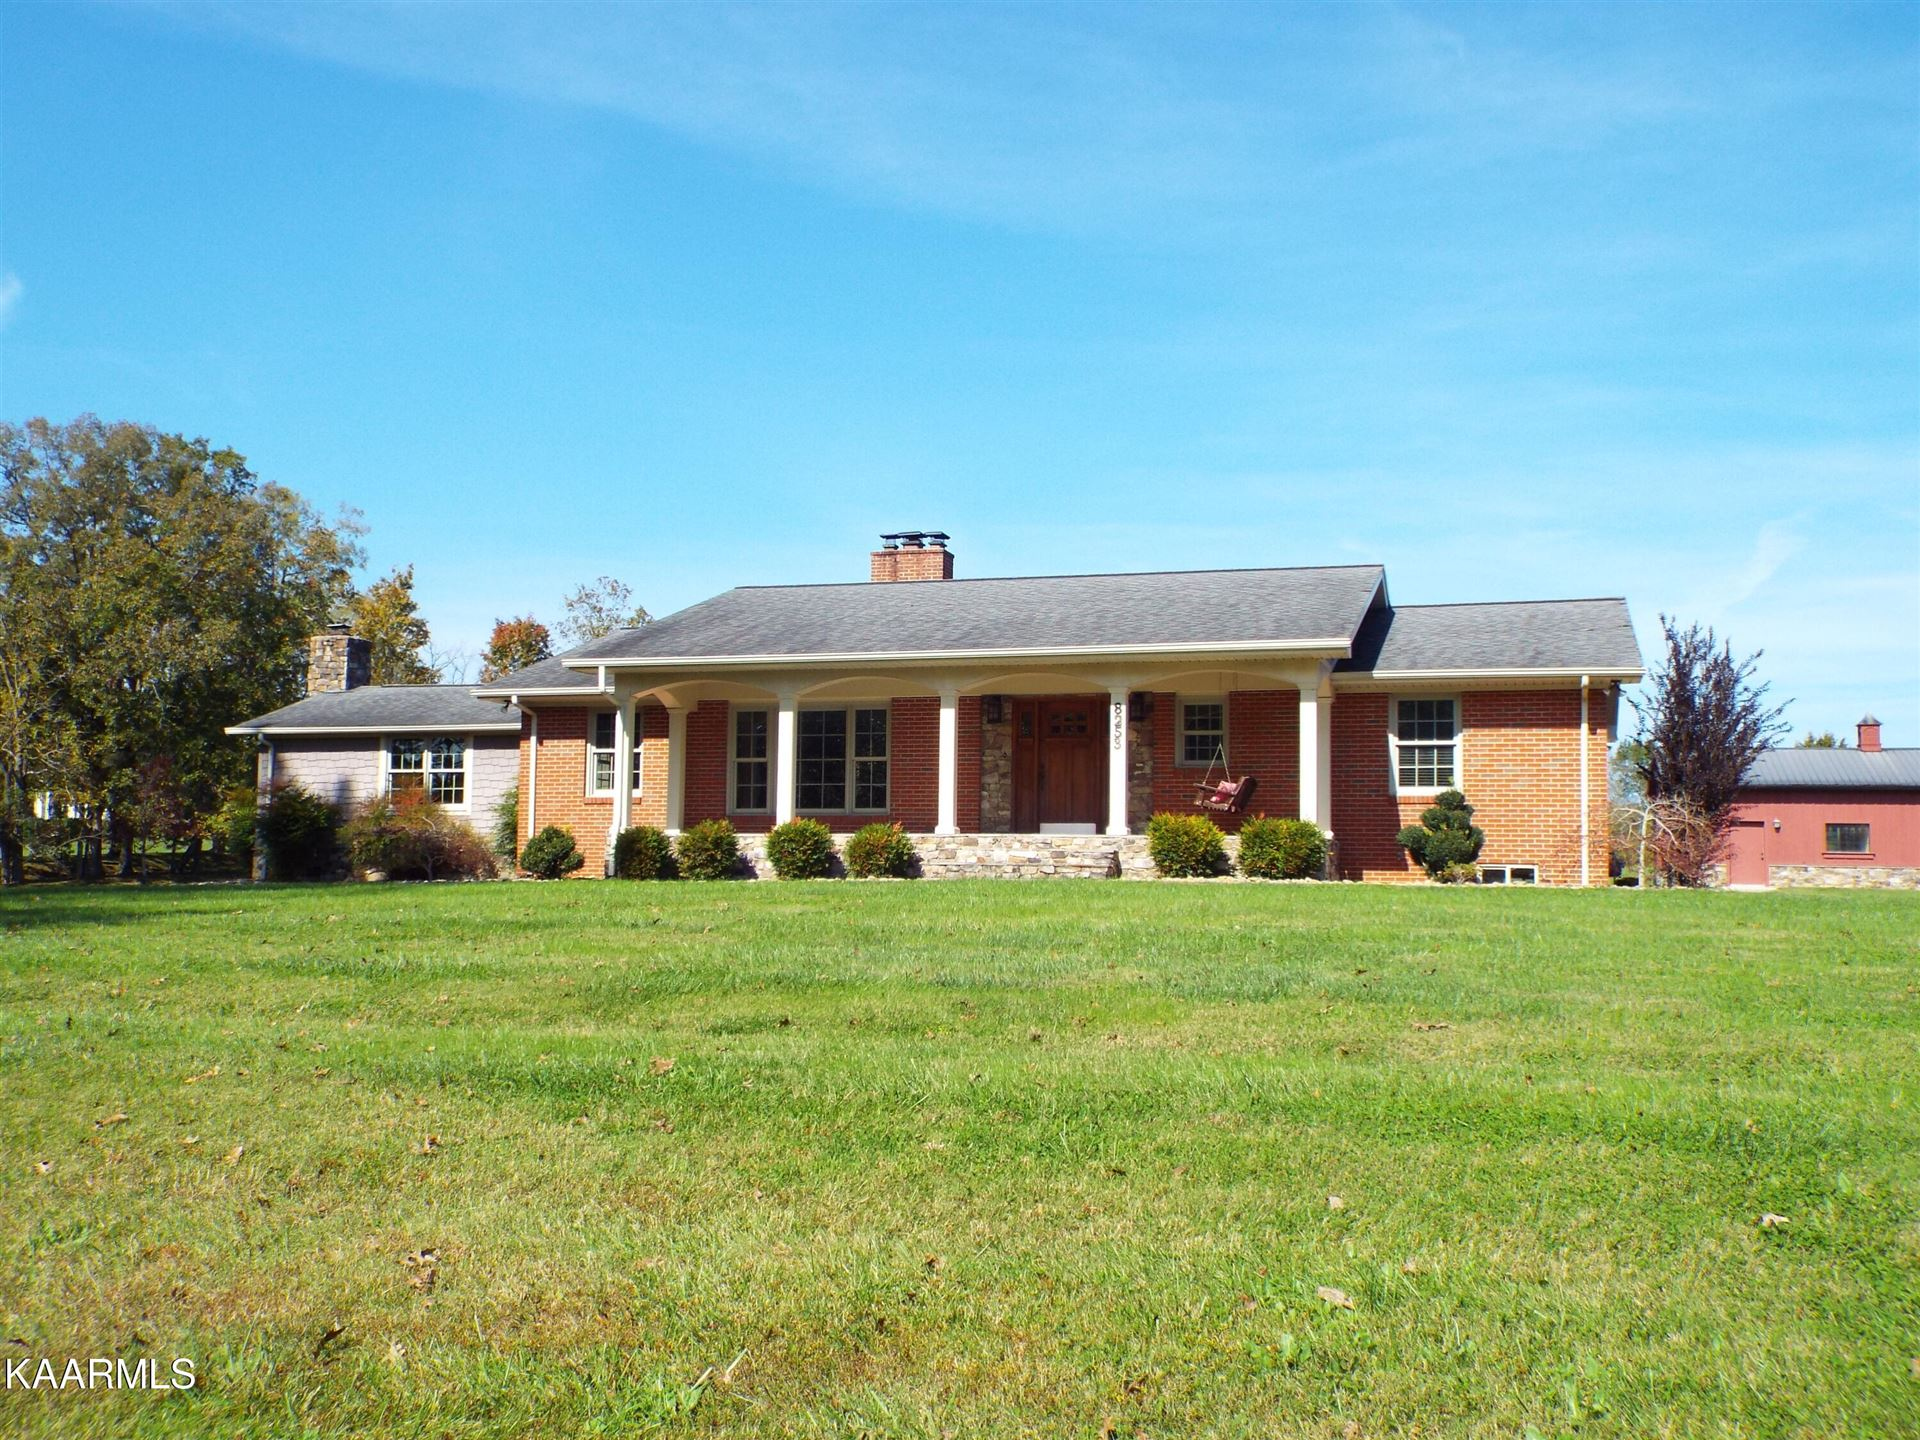 Photo of 8253 N Ruggles Ferry Pike, Knoxville, TN 37924 (MLS # 1171852)